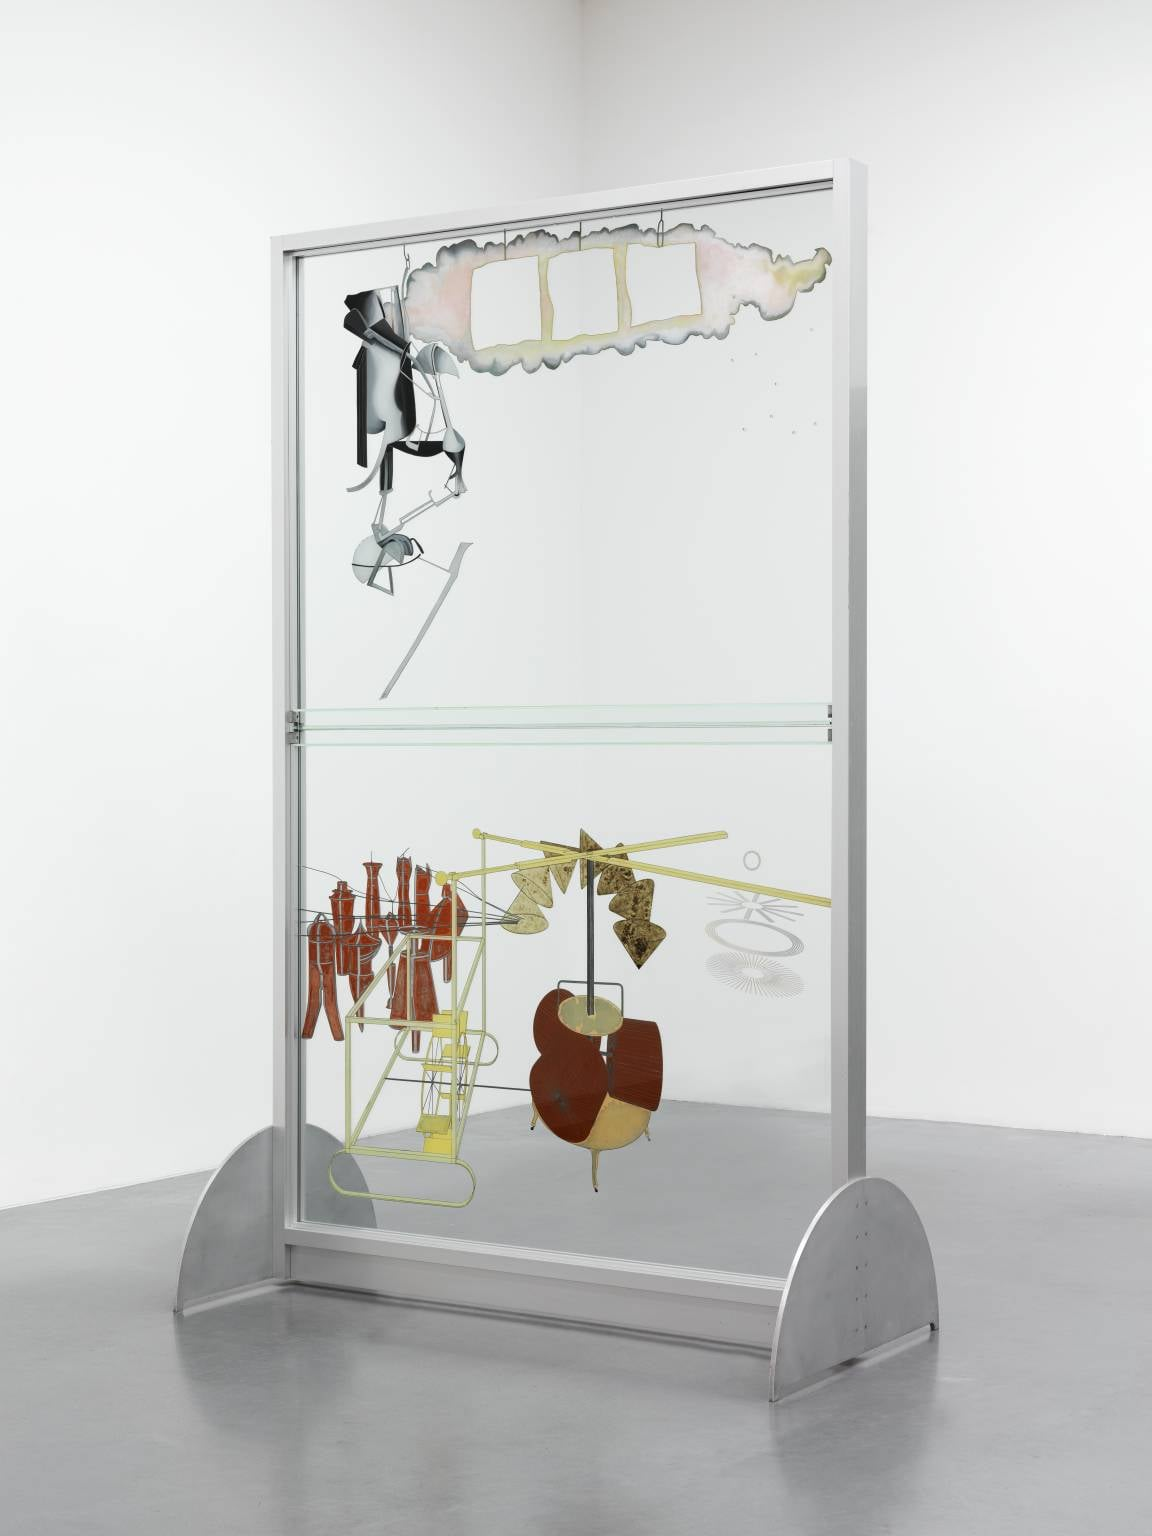 6. Marcel Duchamp (1887–1968) - The Bride Stripped Bare by her Bachelors, Even (The Large Glass), 1915–23, Tate Modern, London